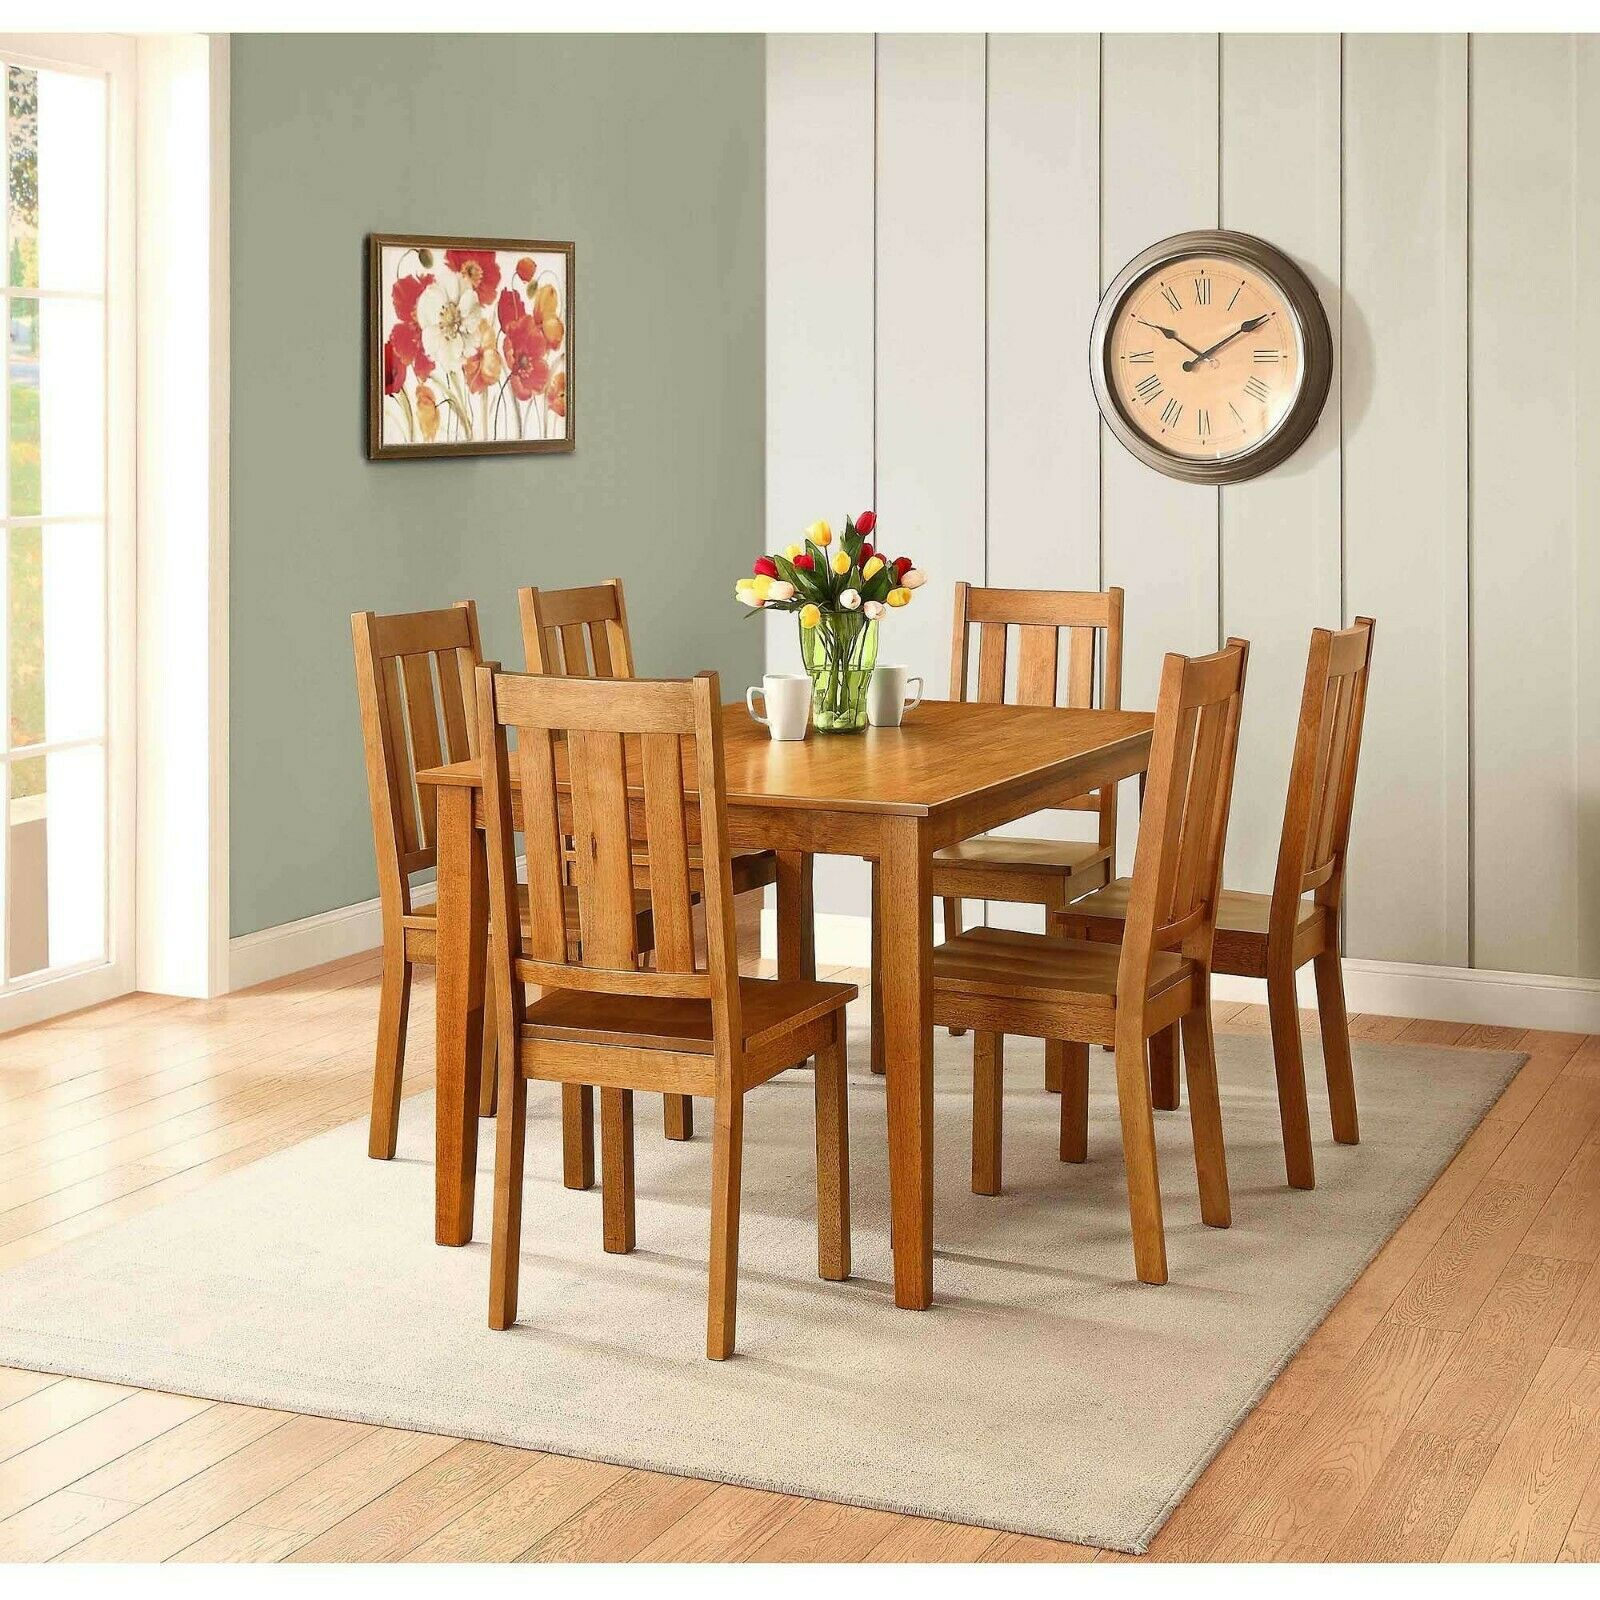 Dining Room Table Set For 6 Farmhouse Wooden Kitchen Tables